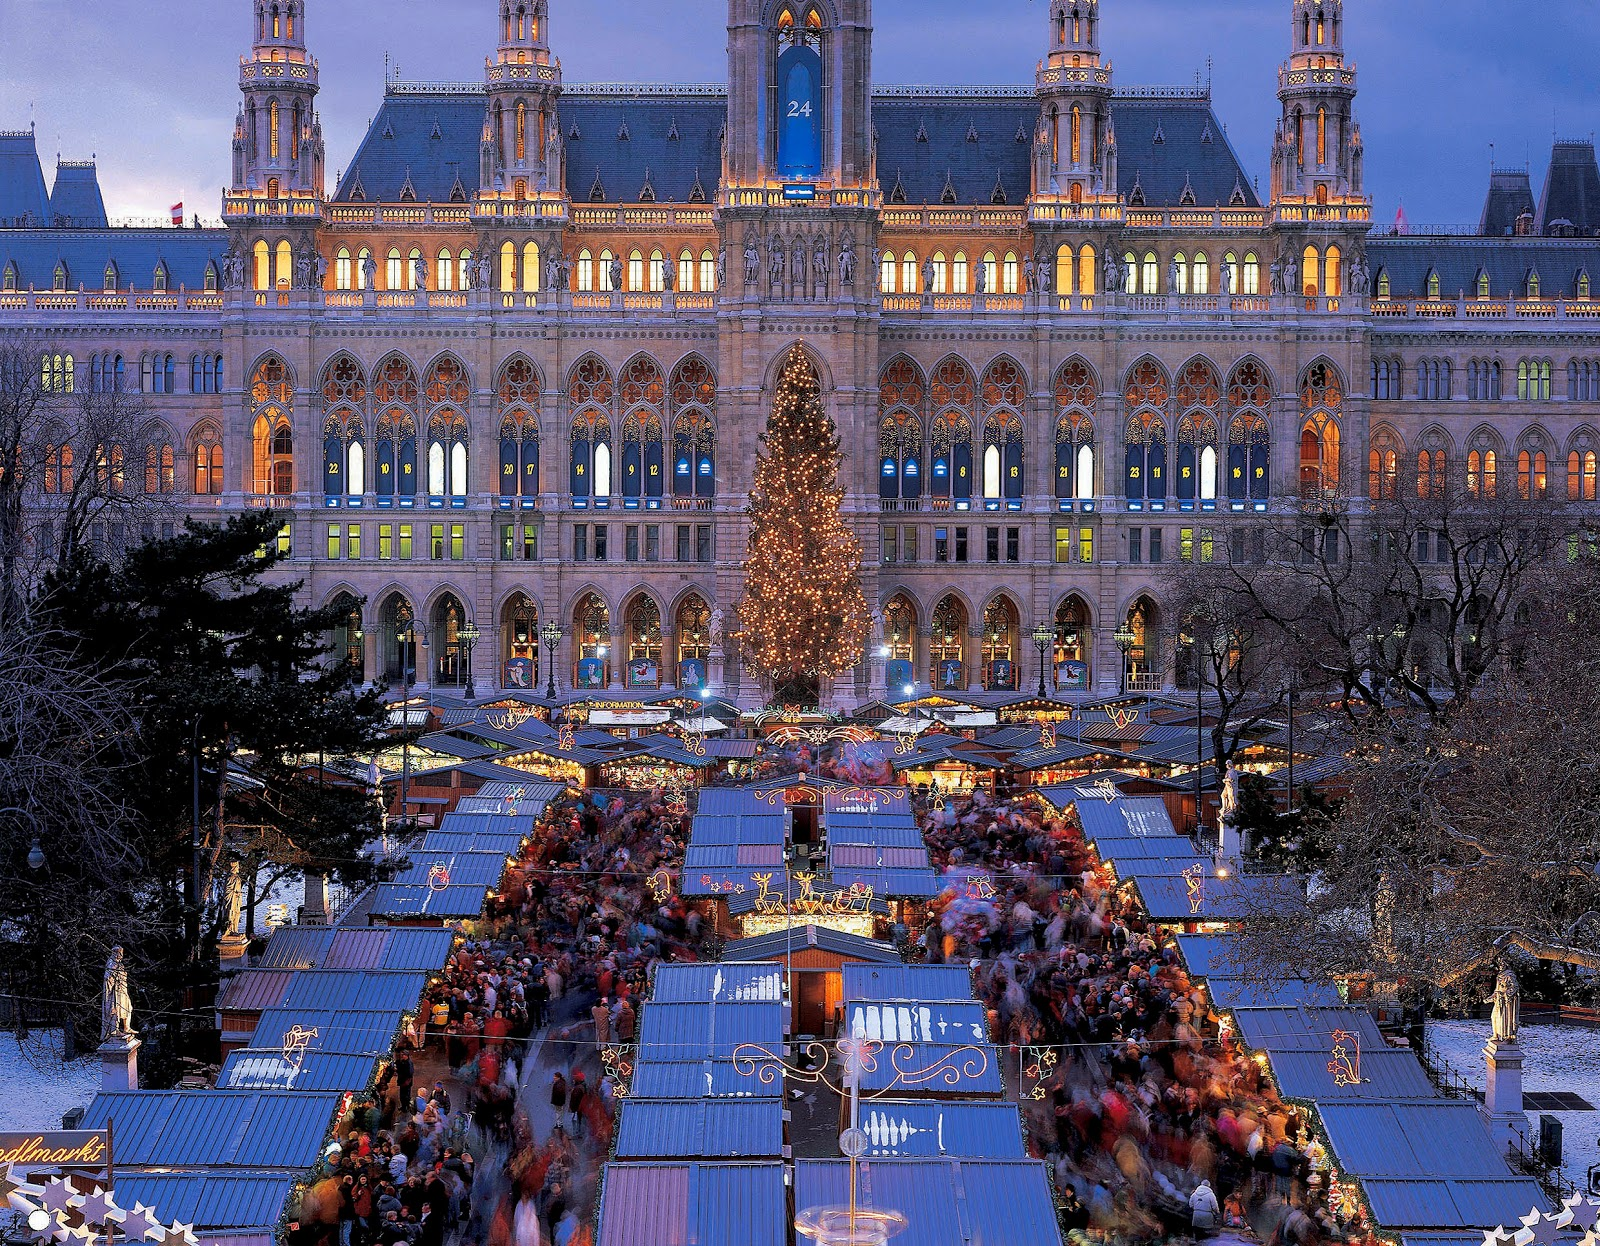 The Viennese City Hall is stunning in this image of the Vienna Christmas Market. Photo: © Austrian Tourist Office. Unauthorized use is prohibited.